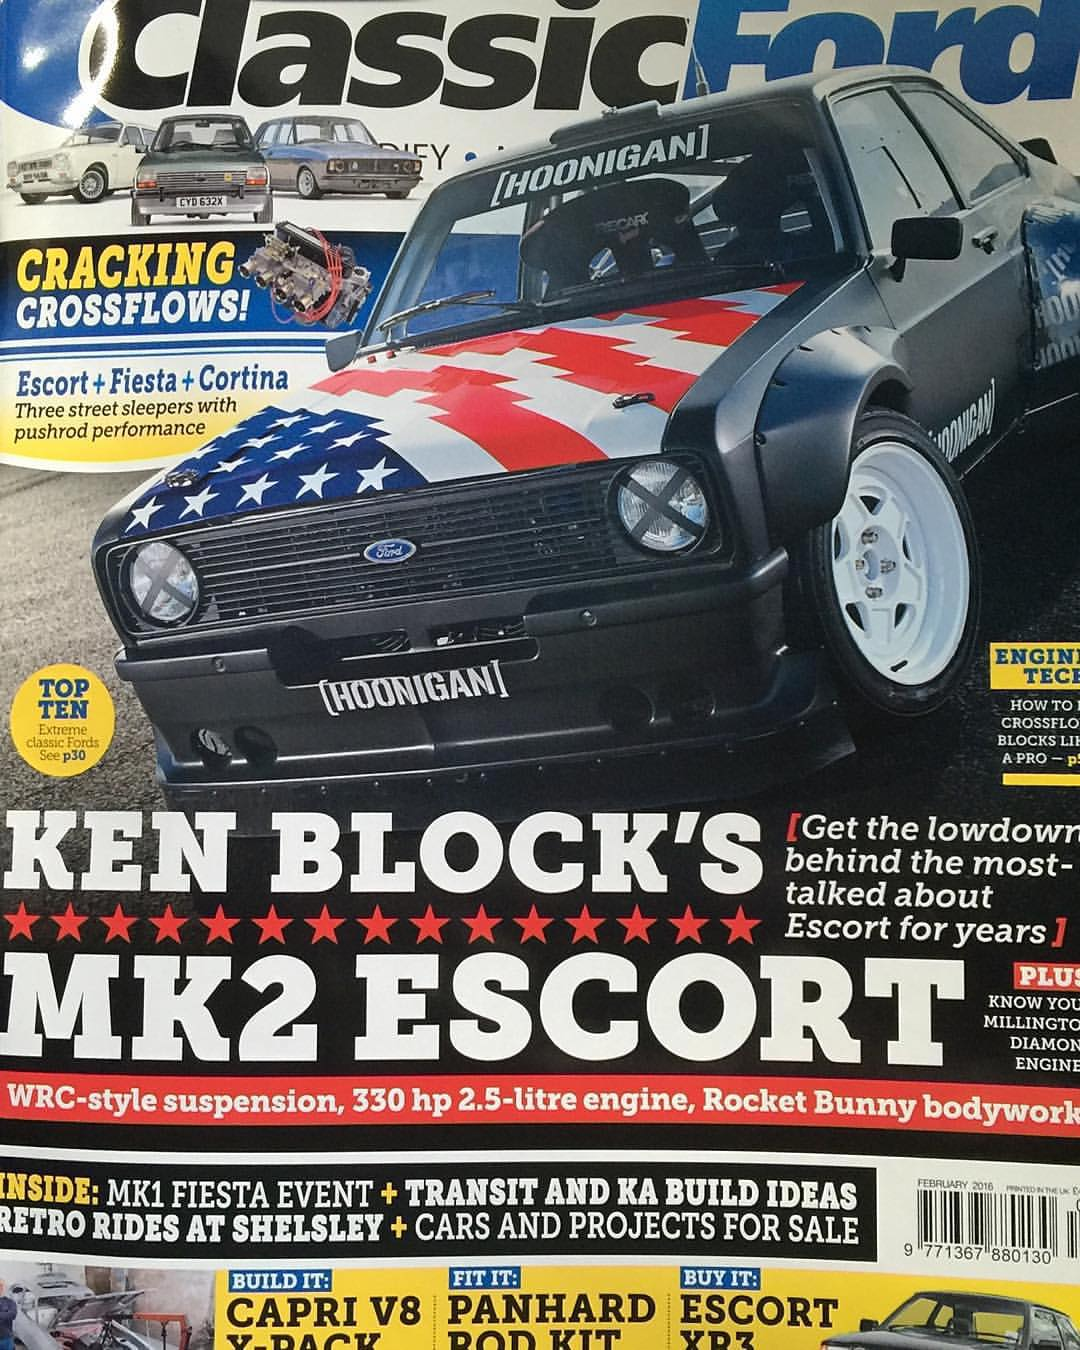 My Hoonigan Gymkhana Escort is on the cover of the latest issue of @ClassicFordMagazine - that rules! Which reminds me, I definitely need some more seat time in this thing. That Ryan Tuerck guy took it all at @GymkhanaGrid last November. Ha....